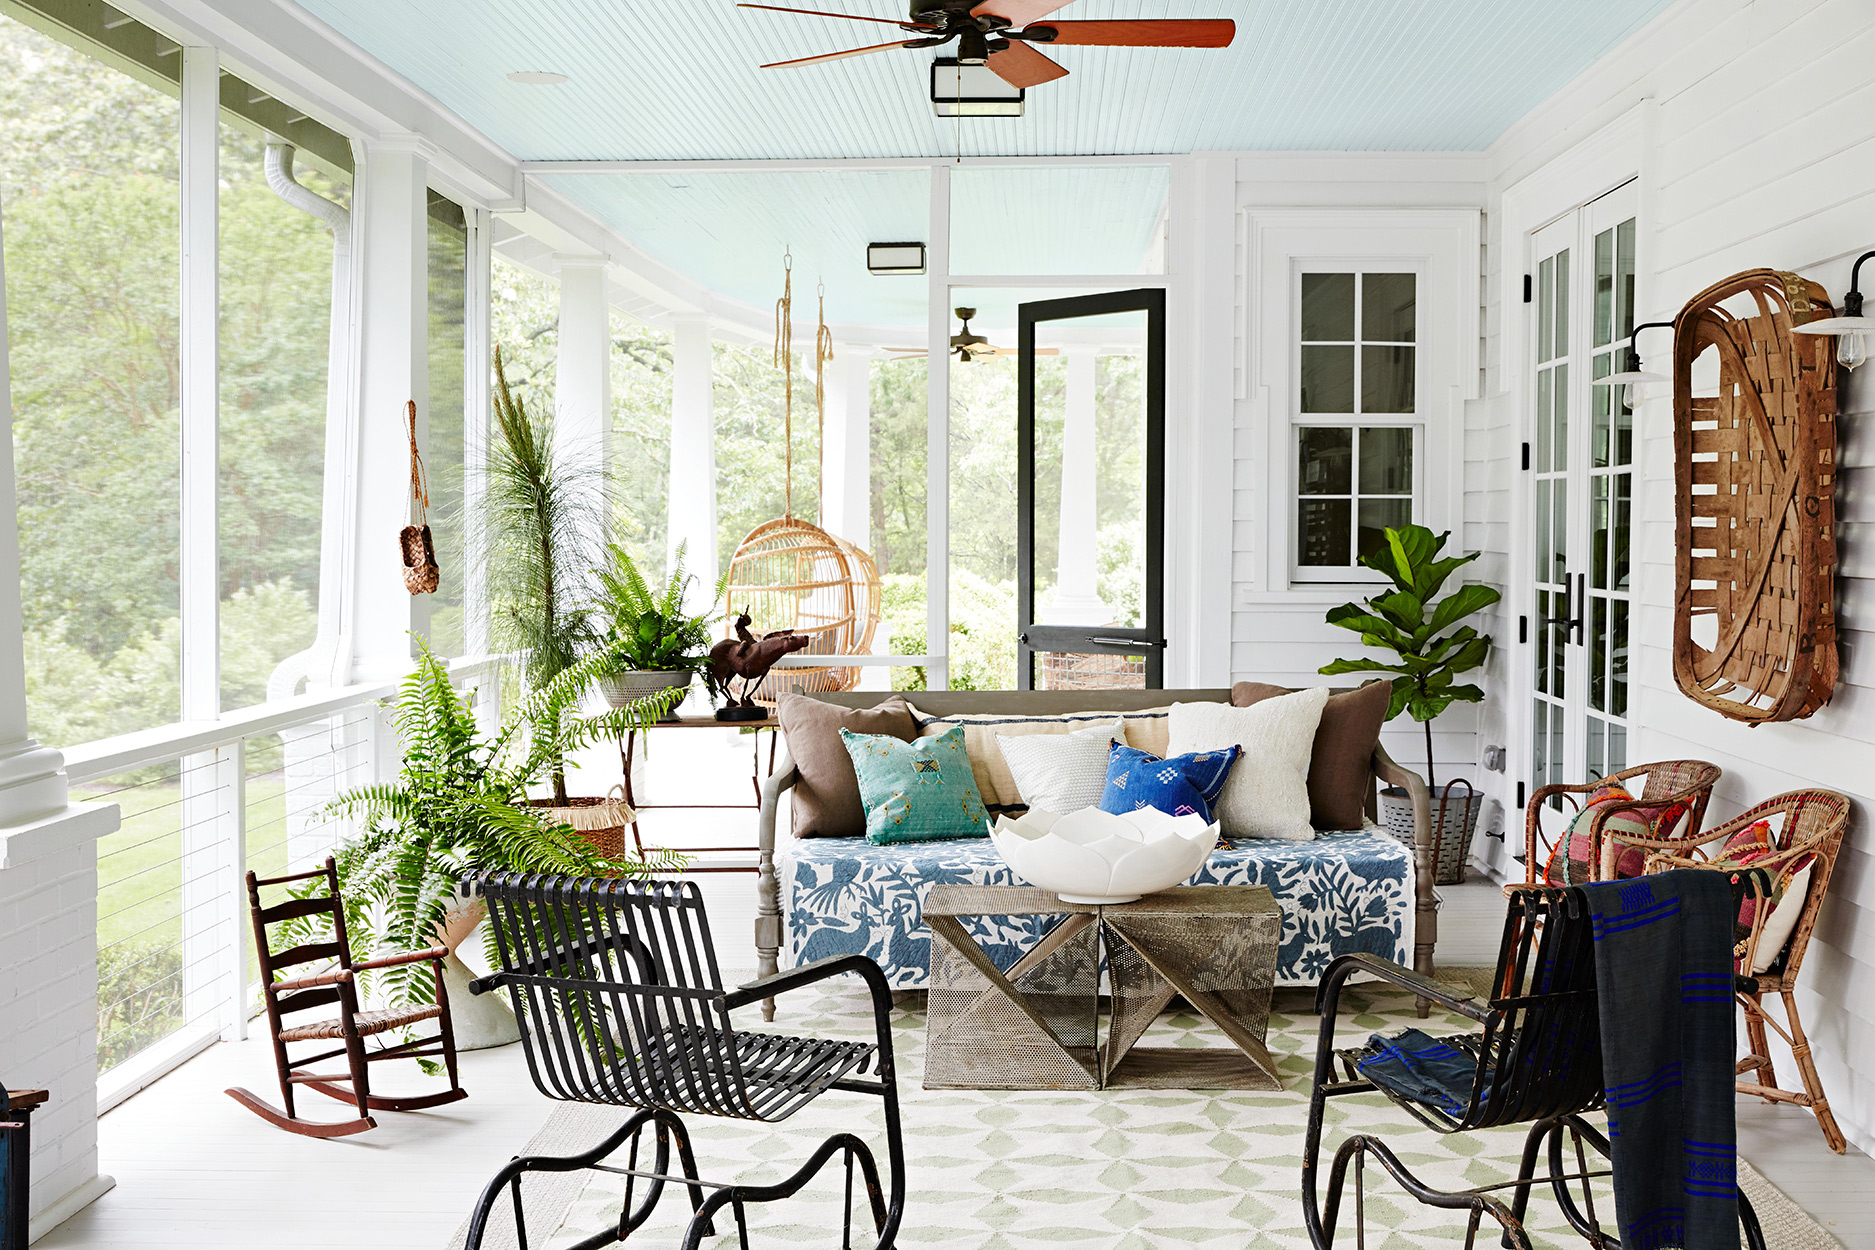 enclosed porch with black chairs and ferns